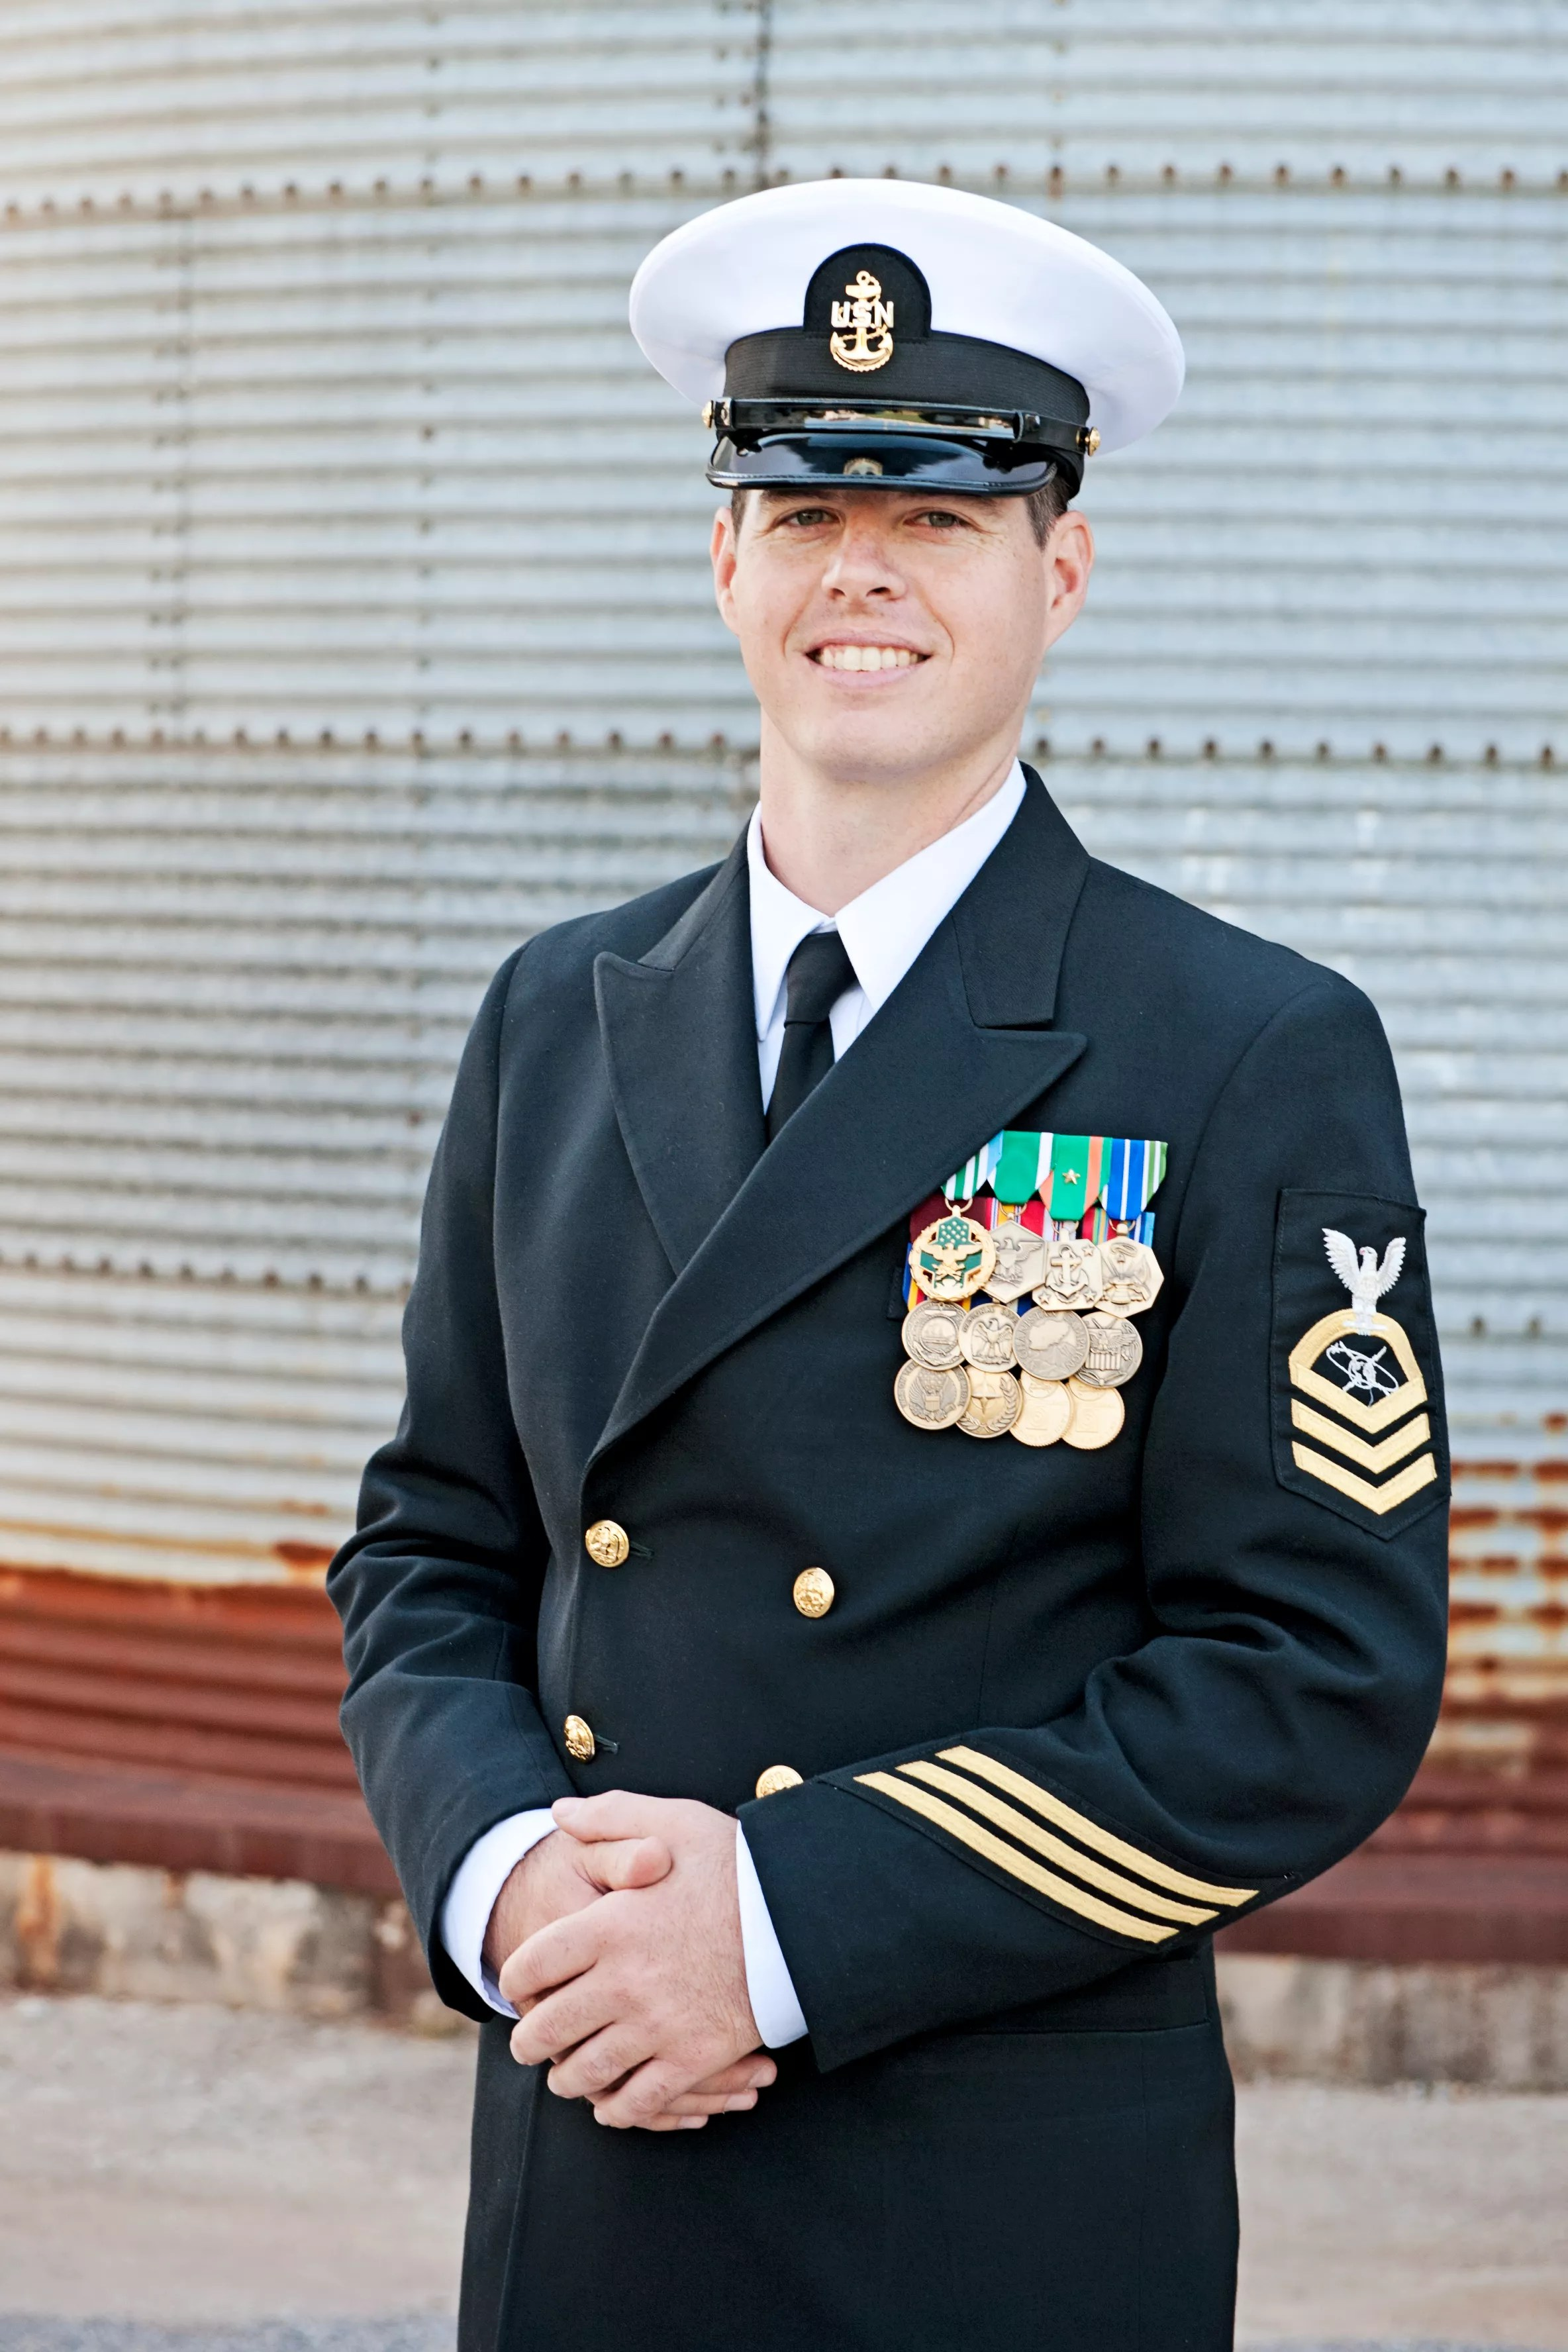 Groom Wearing Navy Seals Outfit